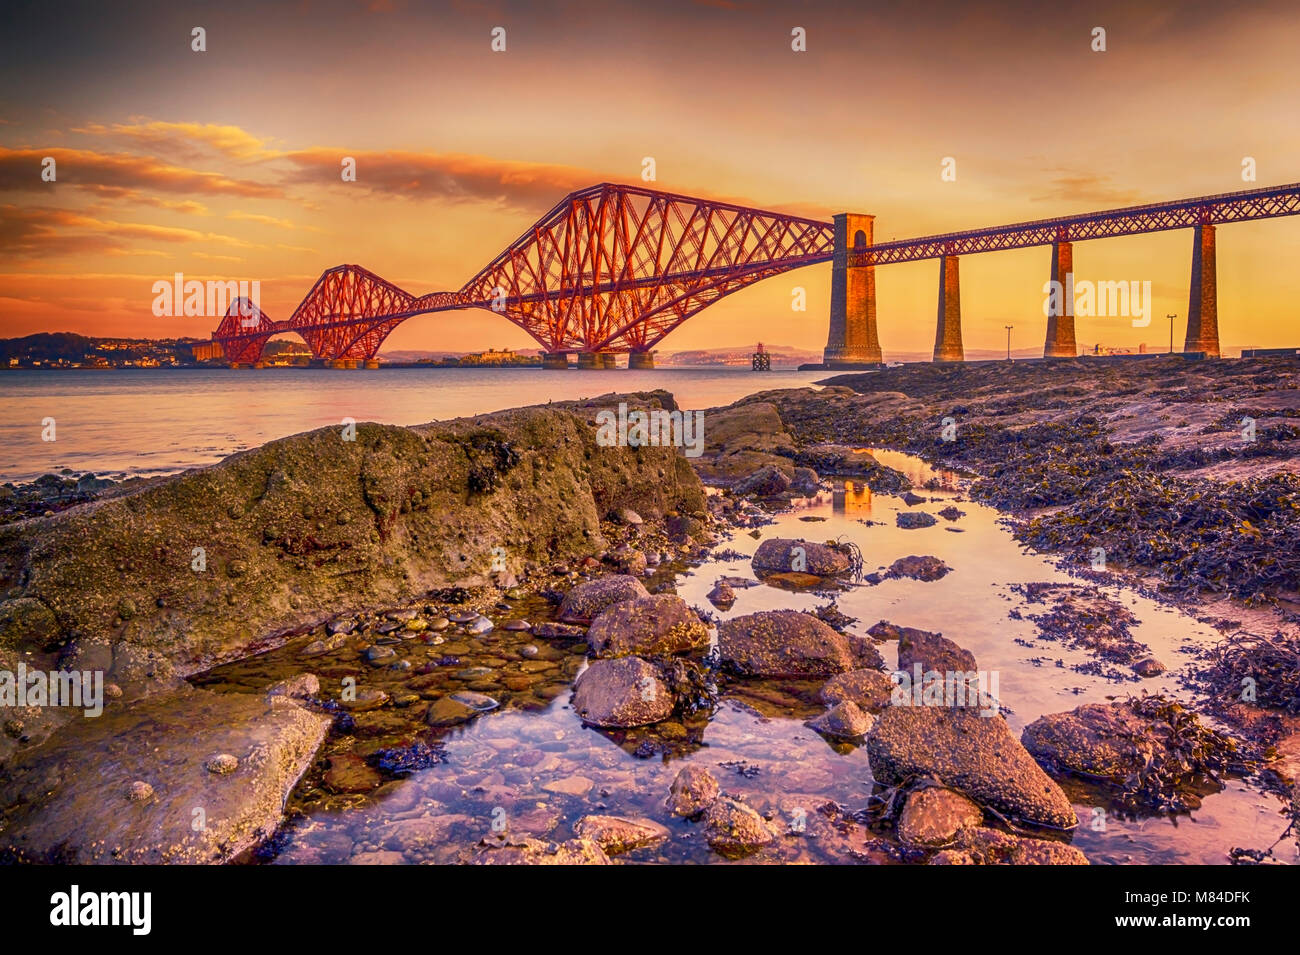 The Forth Bridge, Scotland, basking in the low winter morning sun. - Stock Image